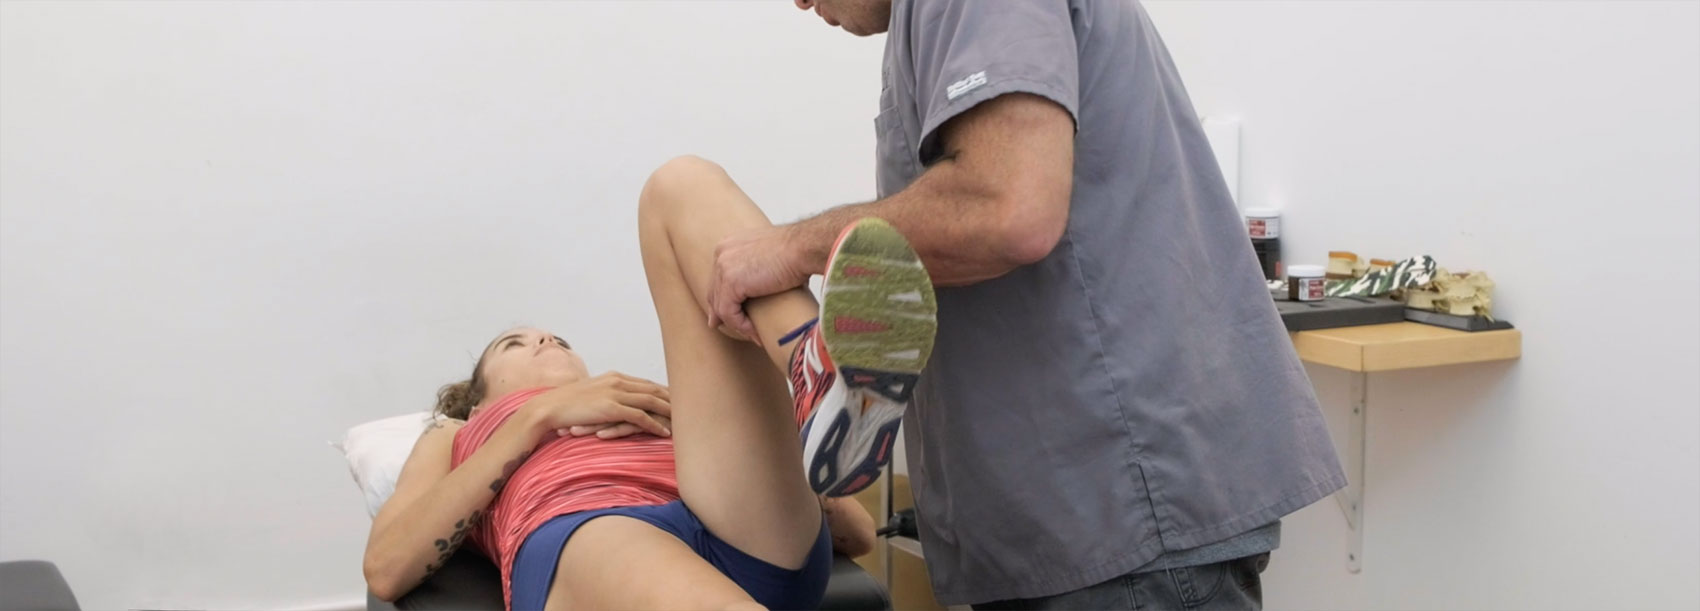 injured runner getting treated for hip pain and running injury